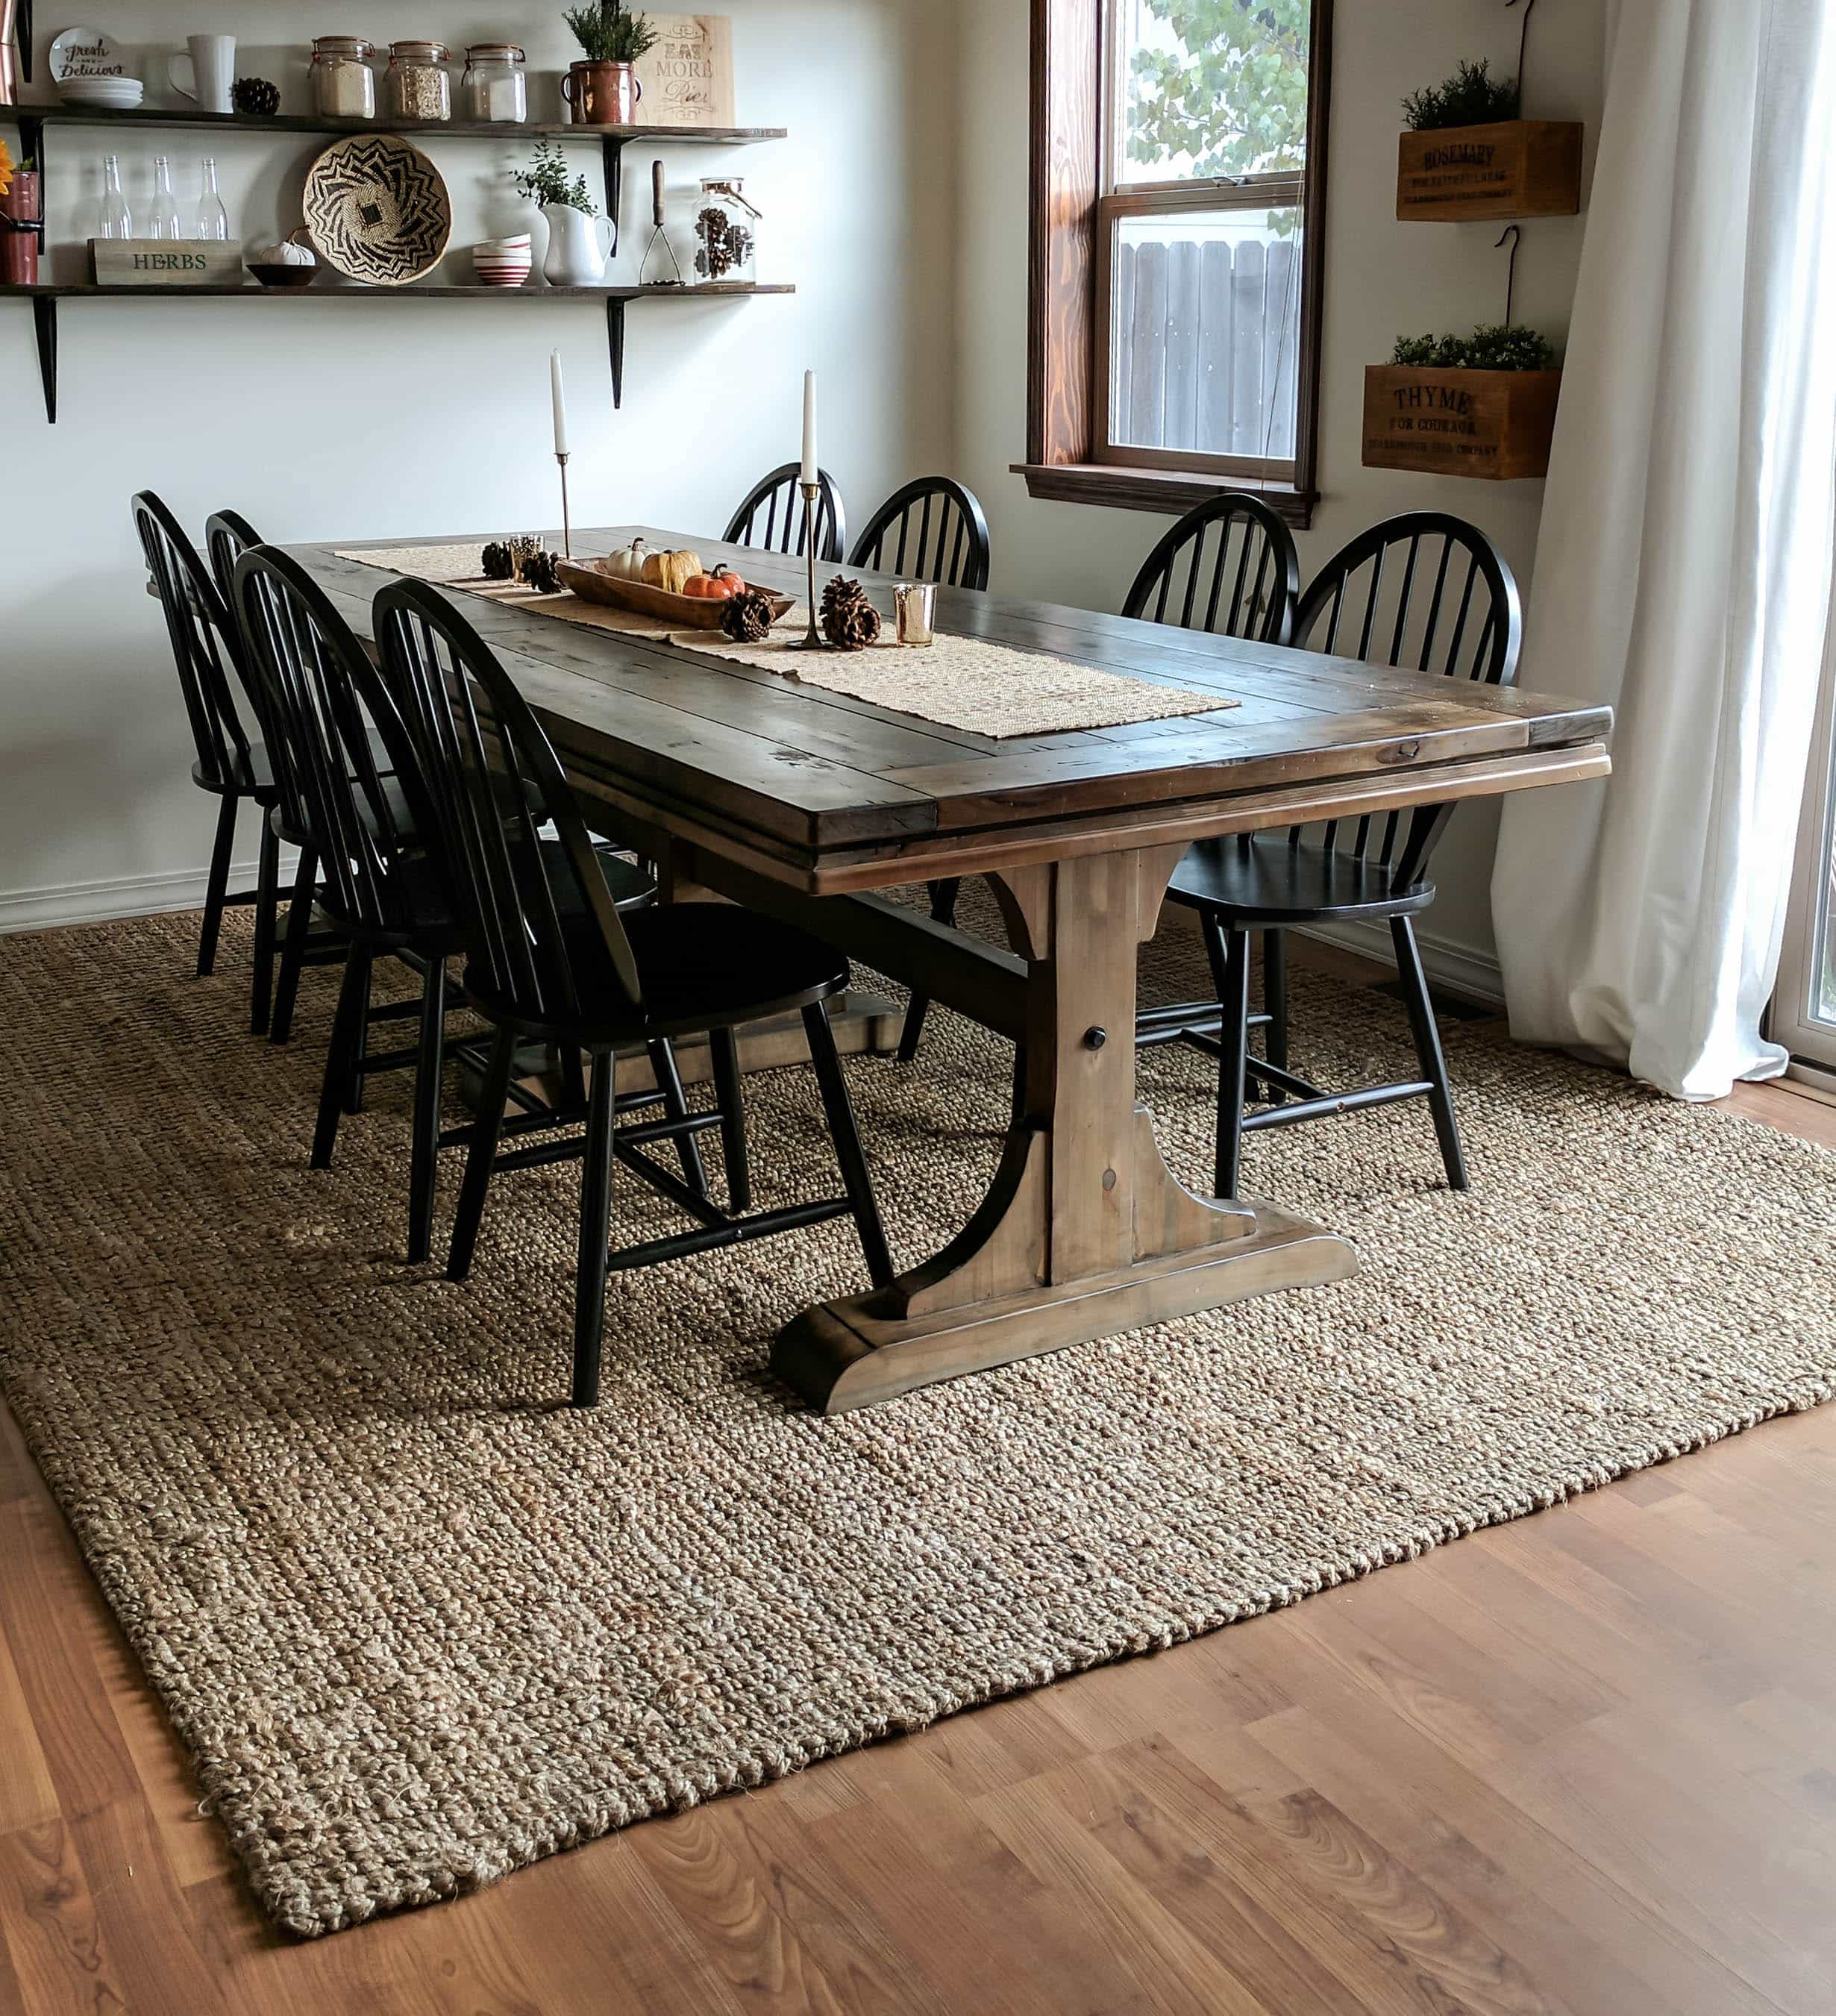 full room picture of dining room with jute rug underneath long wood table and 8 black wood chairs